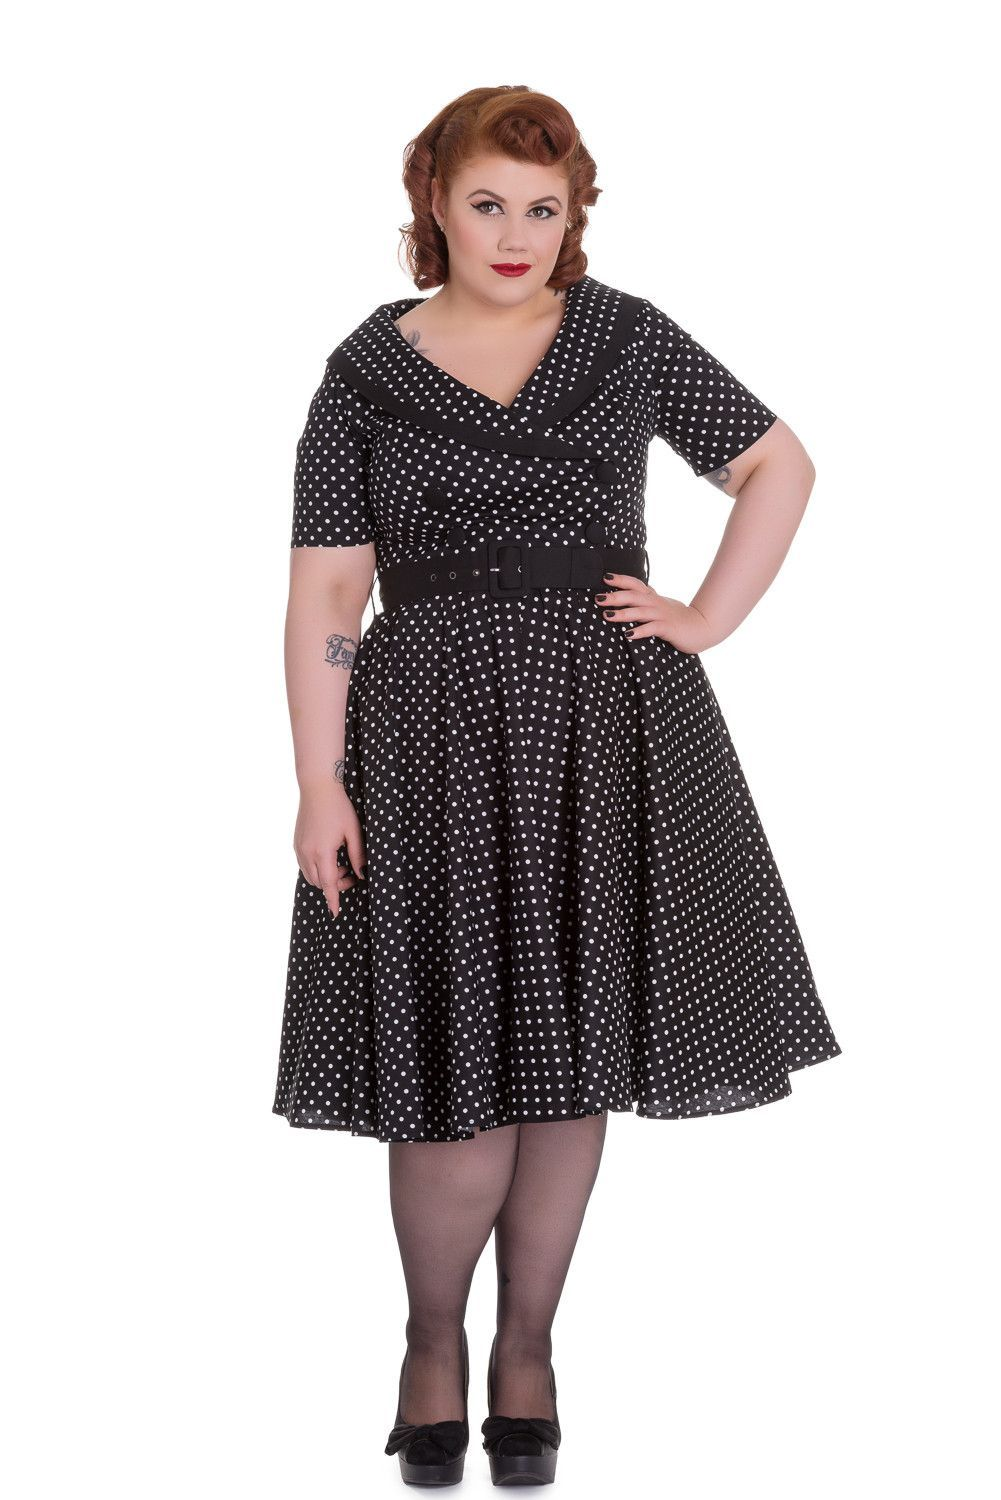 Plus Size 60 s Vintage Style Polka Dot Starlet Wide V-neck Collar Party  Dress 8c67f17fa0d5